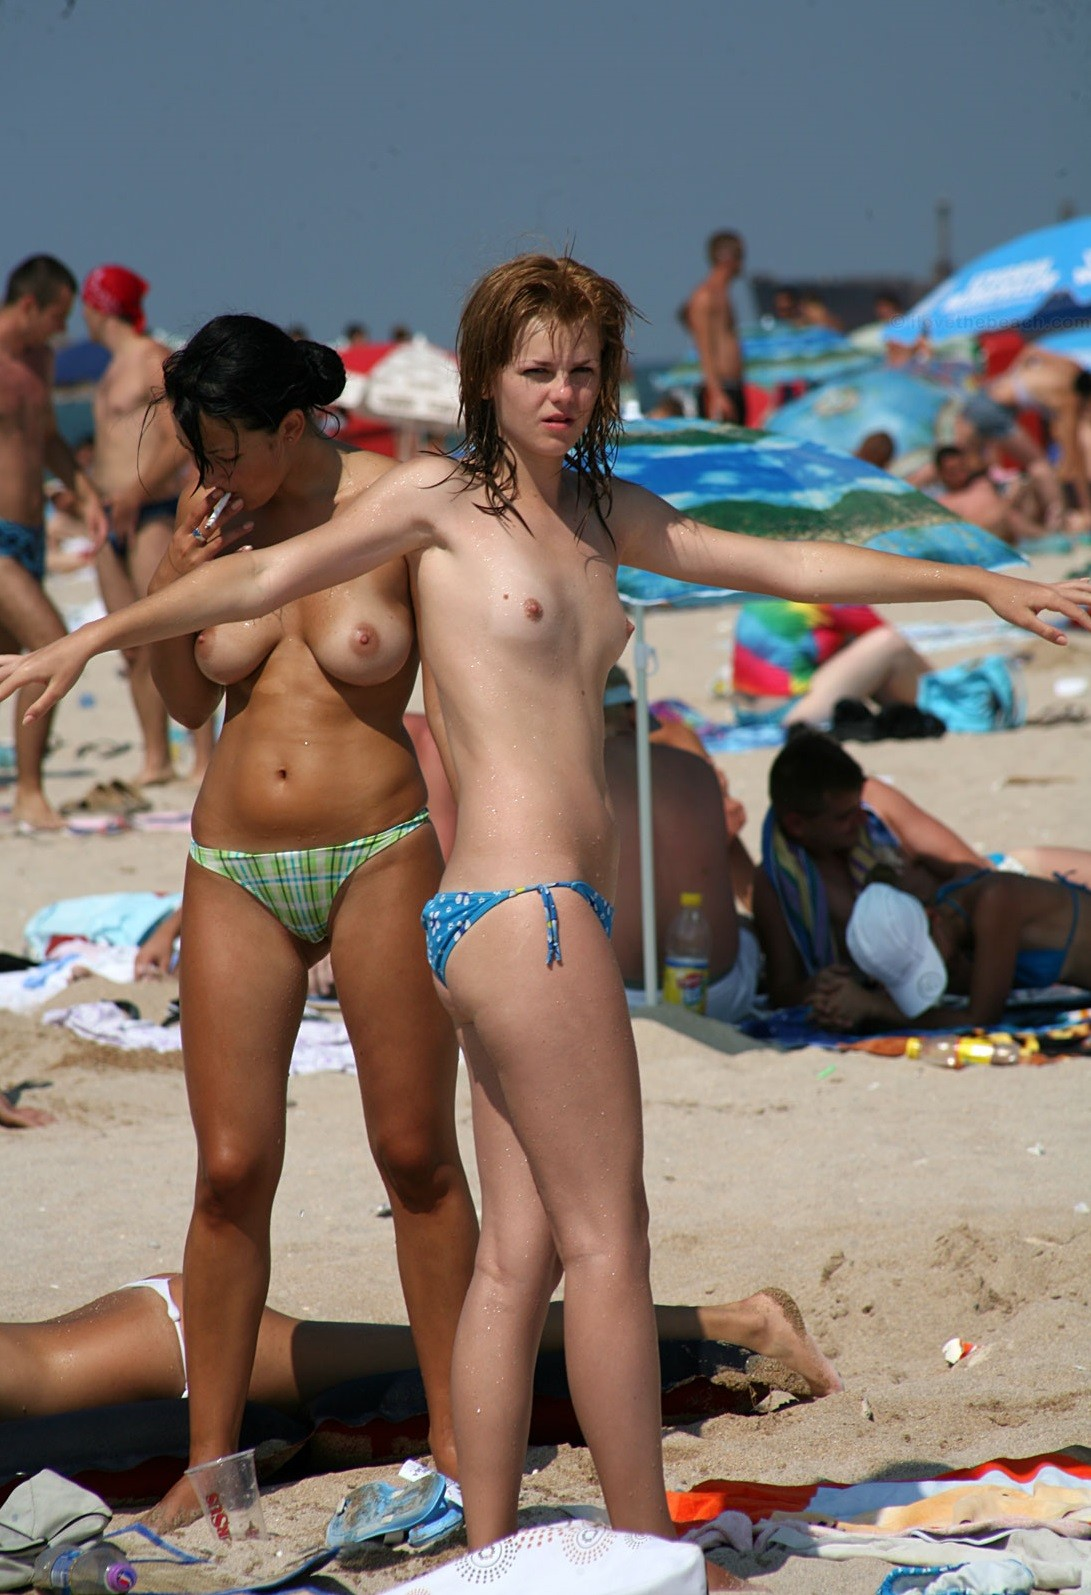 nudists-girls-boobs-beach-topless-mix-vol7-53